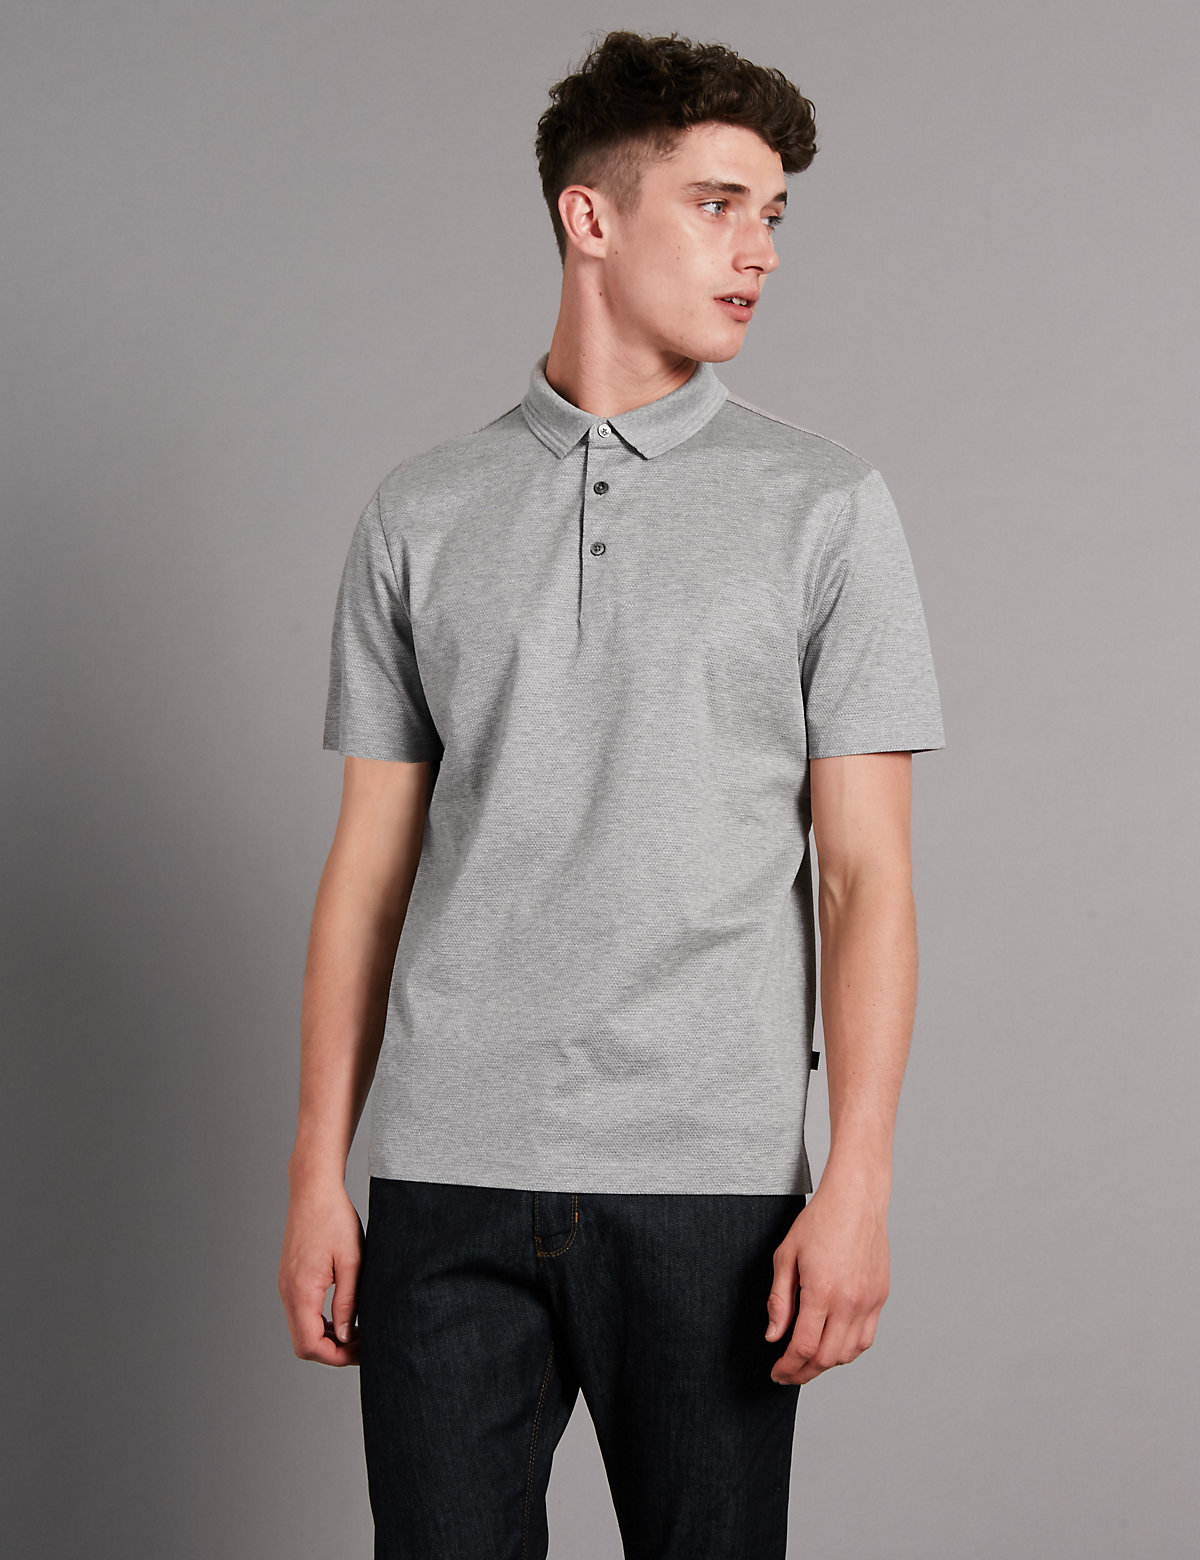 Image of Autograph Supima Cotton Tailored Fit Bubble Tex Polo Shirt